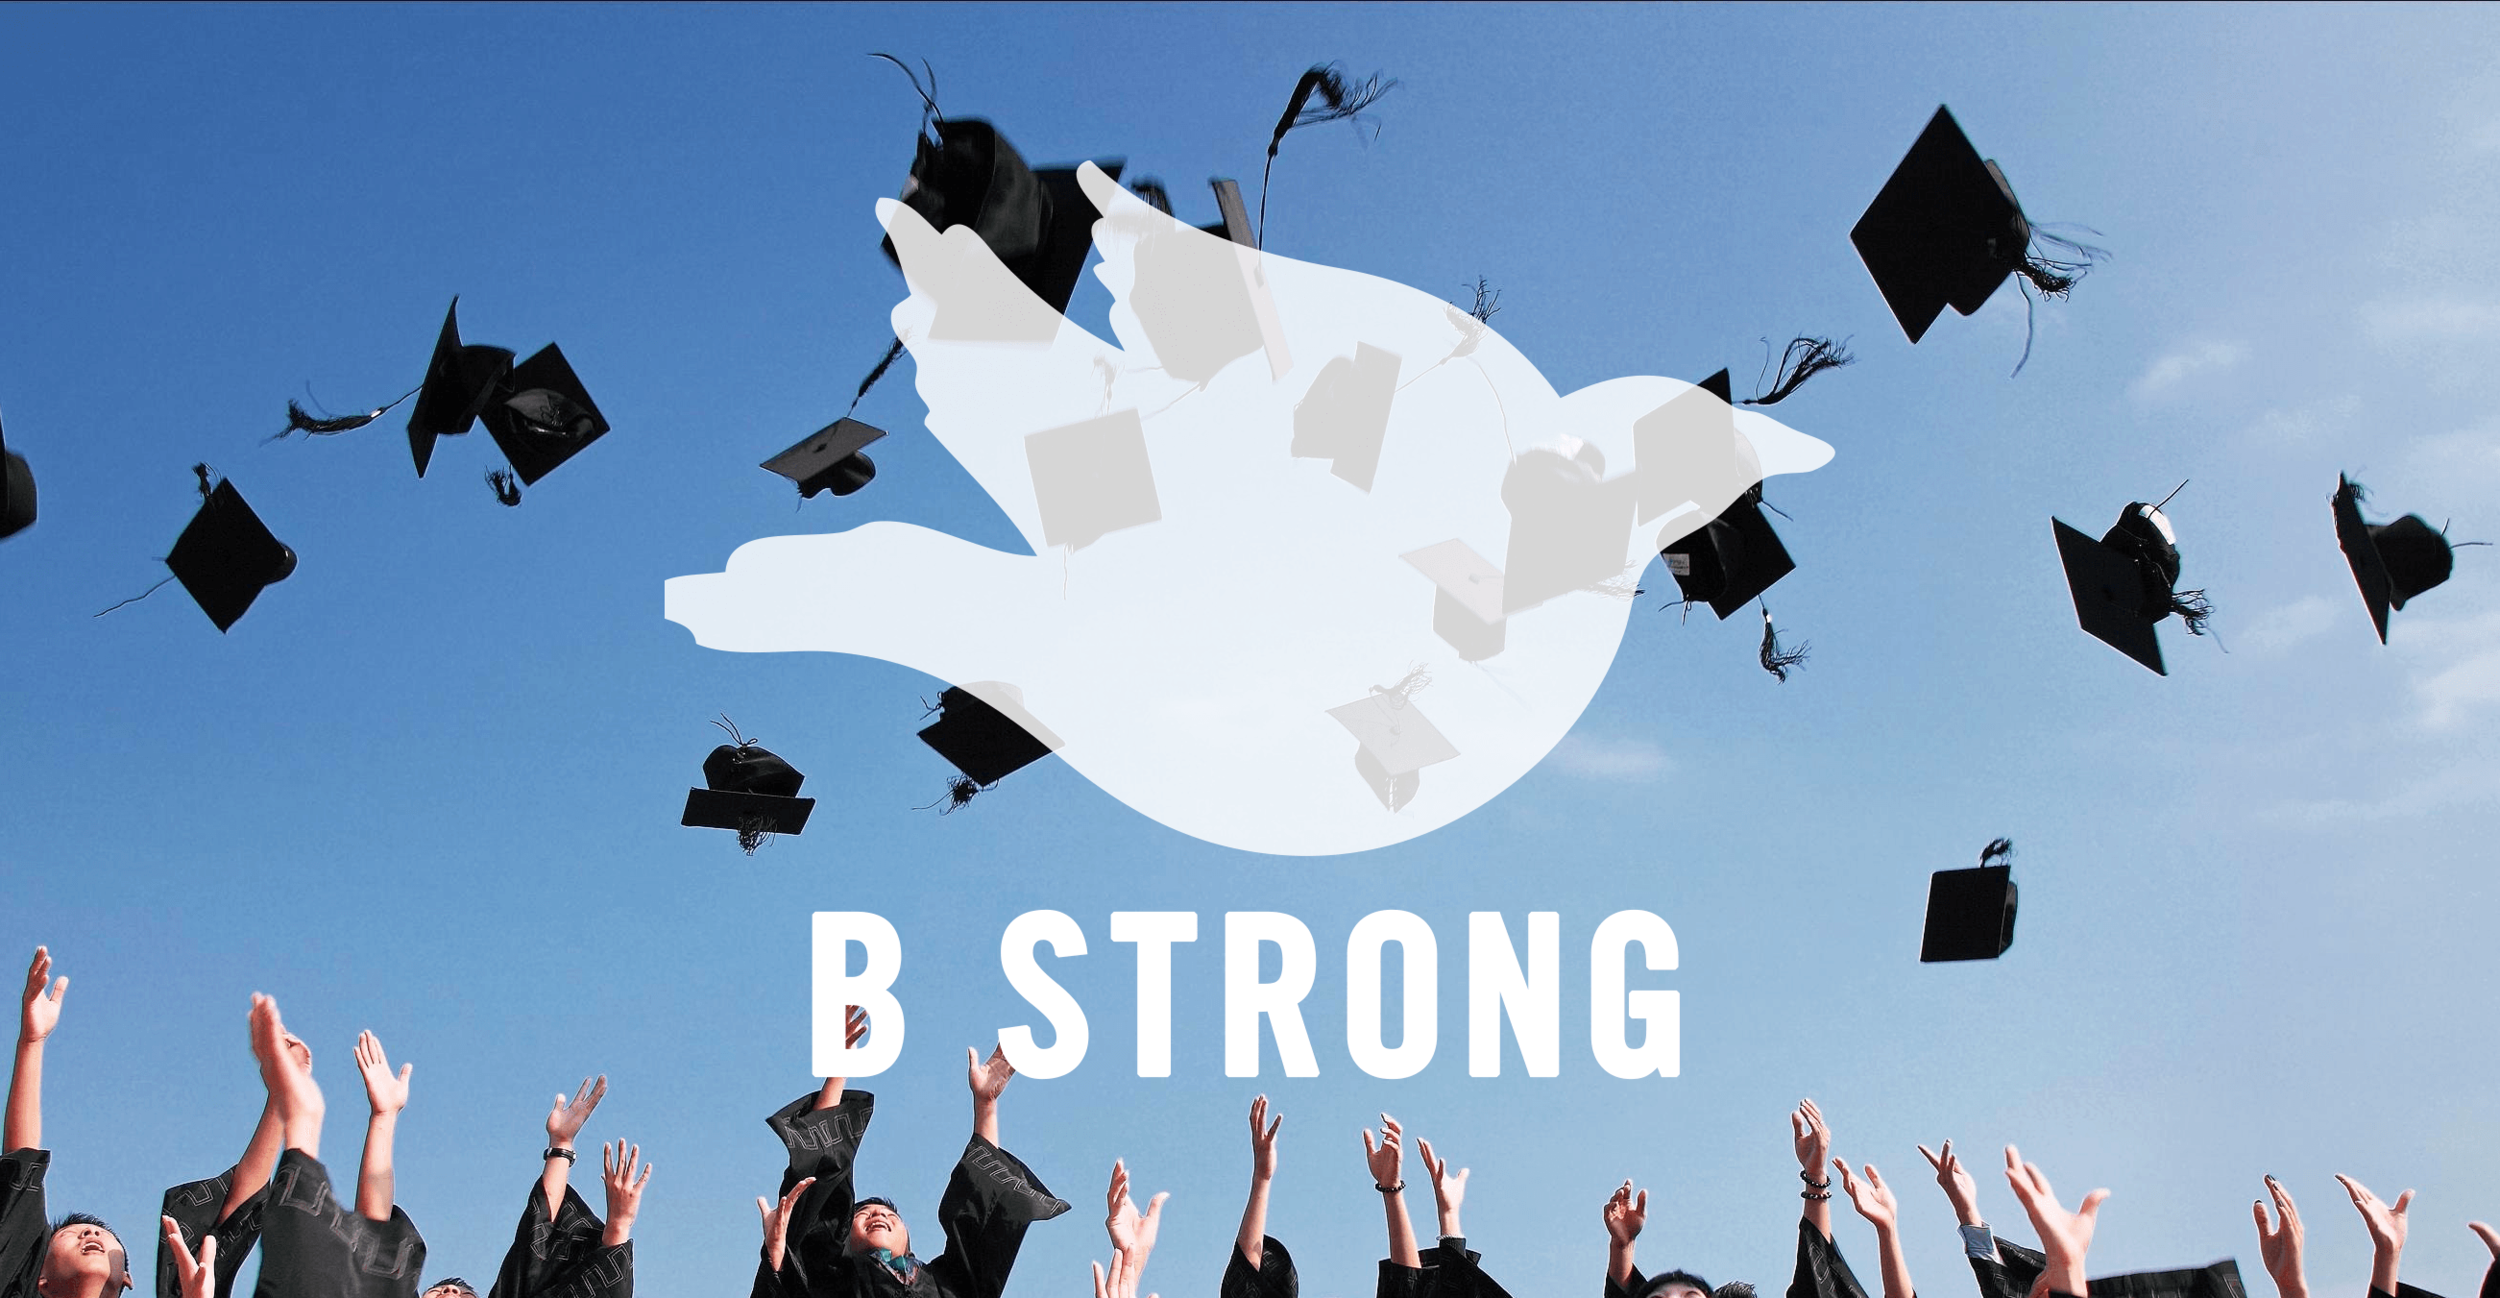 B StrongGrants & Scholarships - Awarding scholarships & grants to students and organizations